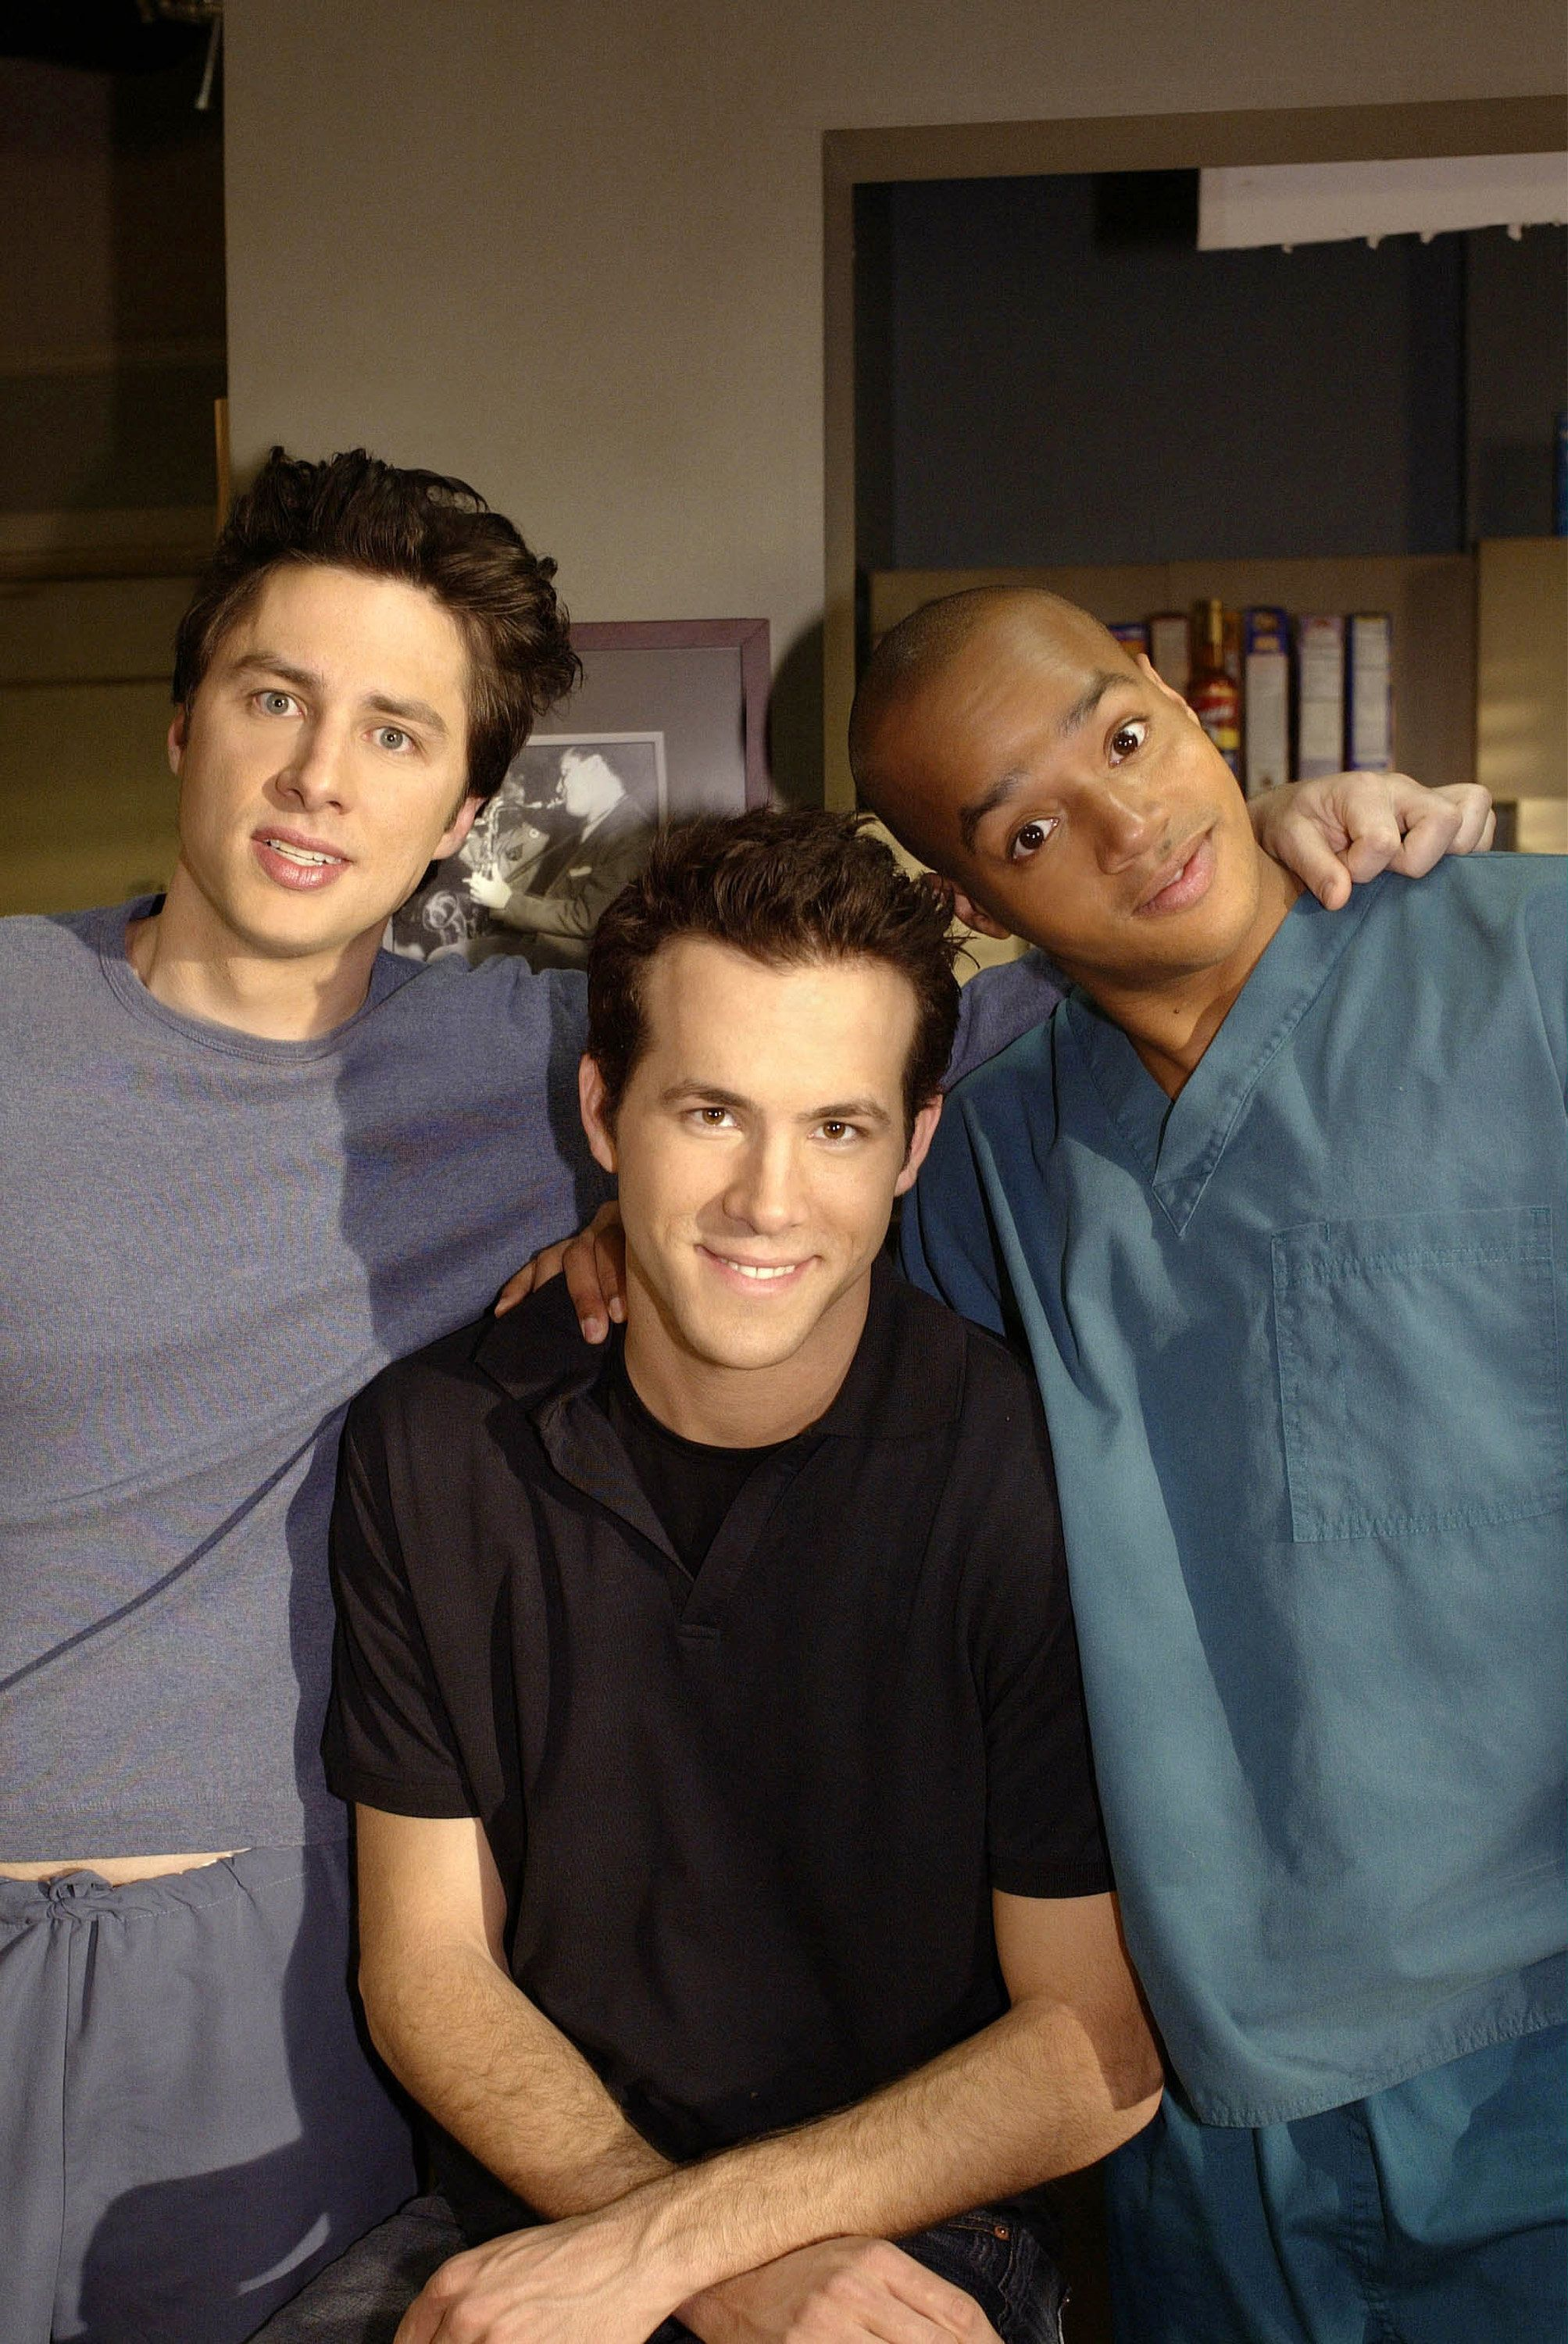 SCRUBS -- 'My Dream Job' Episode 22 -- Pictured: (l-r) Zach Braff as Dr. John 'J.D.' Dorian, Ryan Reynolds as Spence, Donald Faison as Dr. Christopher Turk -- (Photo by: Mitch Haddad/NBC/NBCU Photo Bank via Getty Images)